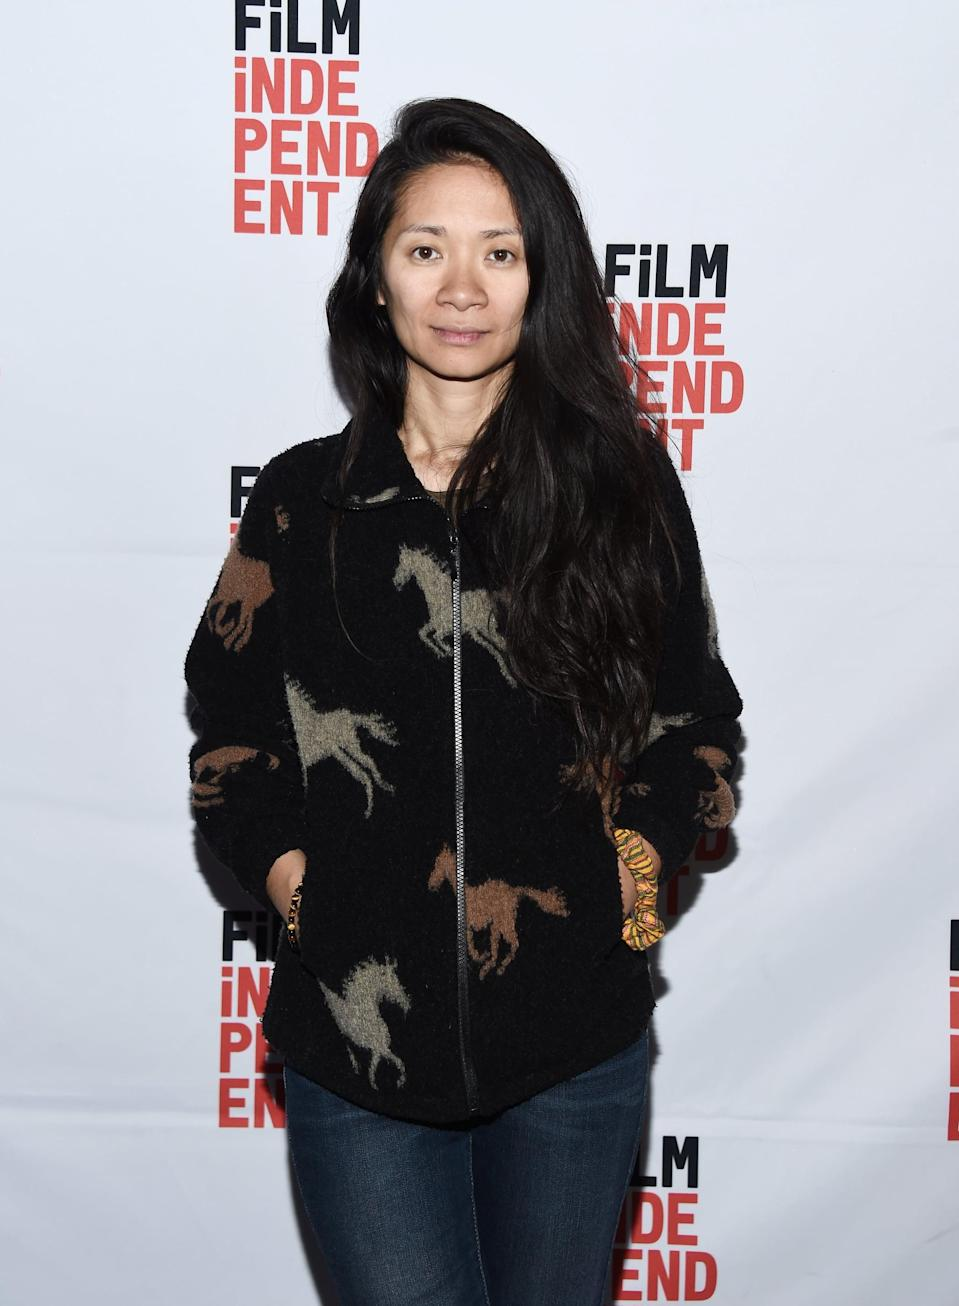 """<p>Back in 2018, Zhao mused to <strong>Vogue</strong> about the kind of storyteller she wanted to be, and landed on one major thing: hope. """"At a time like this, there's a need to see that there's good in America. We're always being told that we have to win all the time. But that's not real life,"""" she said. """"Our film's message isn't the typical Hollywood ending. [The protagonist] has lost something, but he doesn't give up. He never would."""" </p> <p>She added, """"I would never want to make a film without hope.""""</p>"""